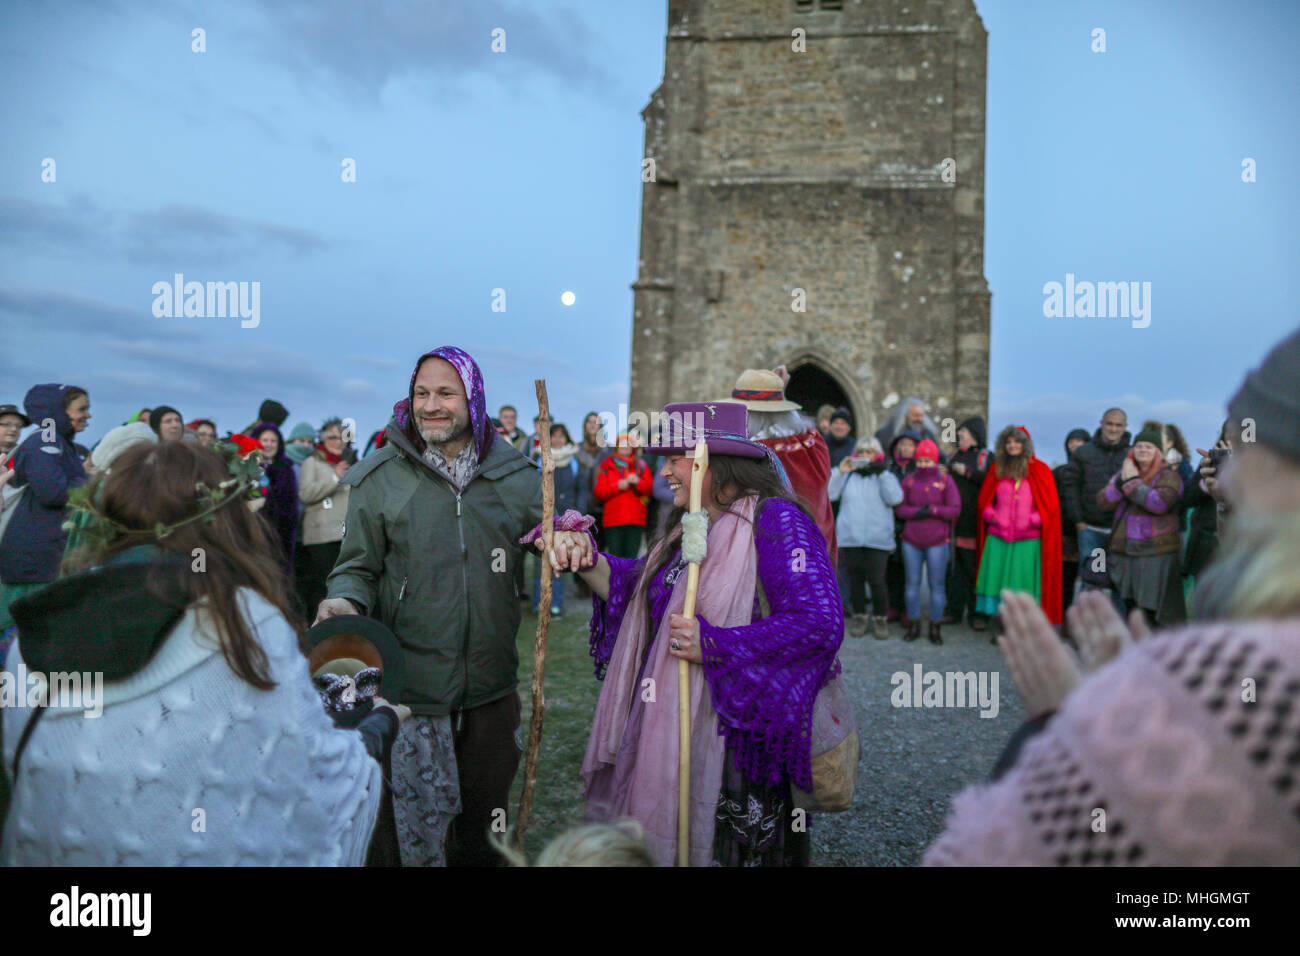 Glastonbury, UK. 1st May 2018. Beltane Celebrations at sunrise on Glastonbury Tor, Somerset, England.  Beltane is the ancient Celtic May Day, or spring festival celebrating the commencement of summer. © Haydn Denman/Alamy Live News - Stock Image